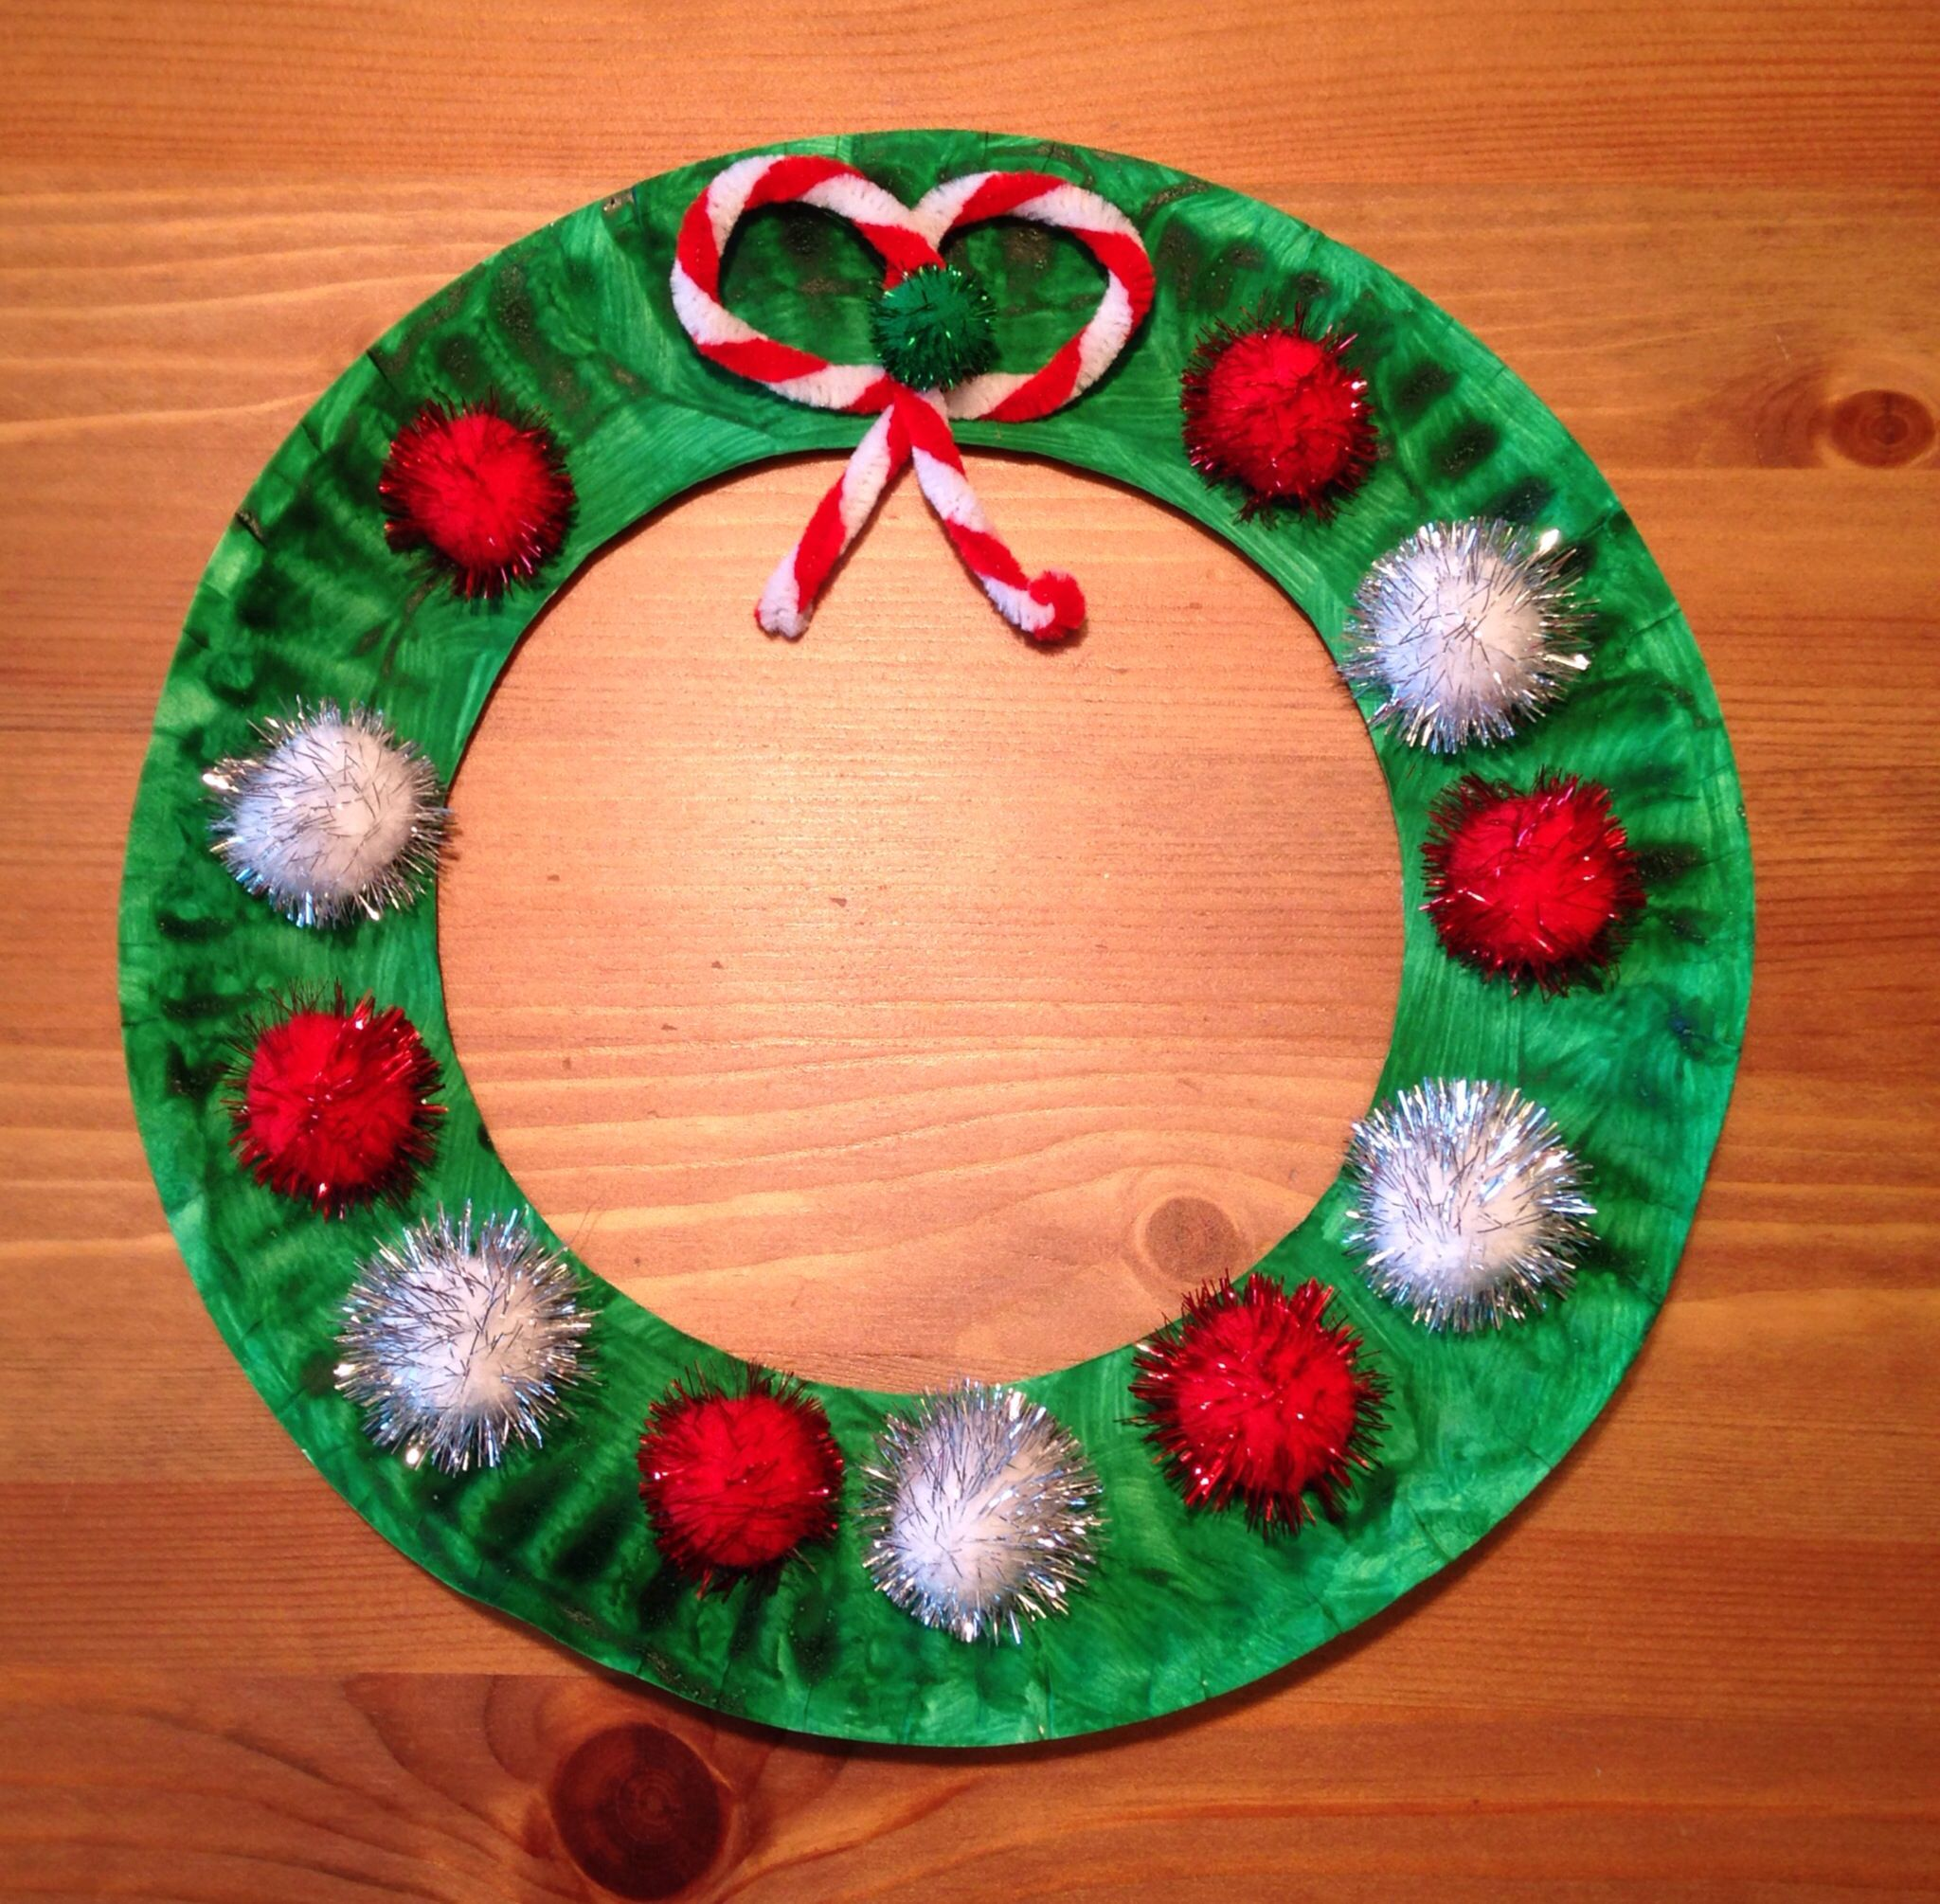 24 Christmas Gift Ideas | kids stuff for work | Pinterest | Wreaths ...